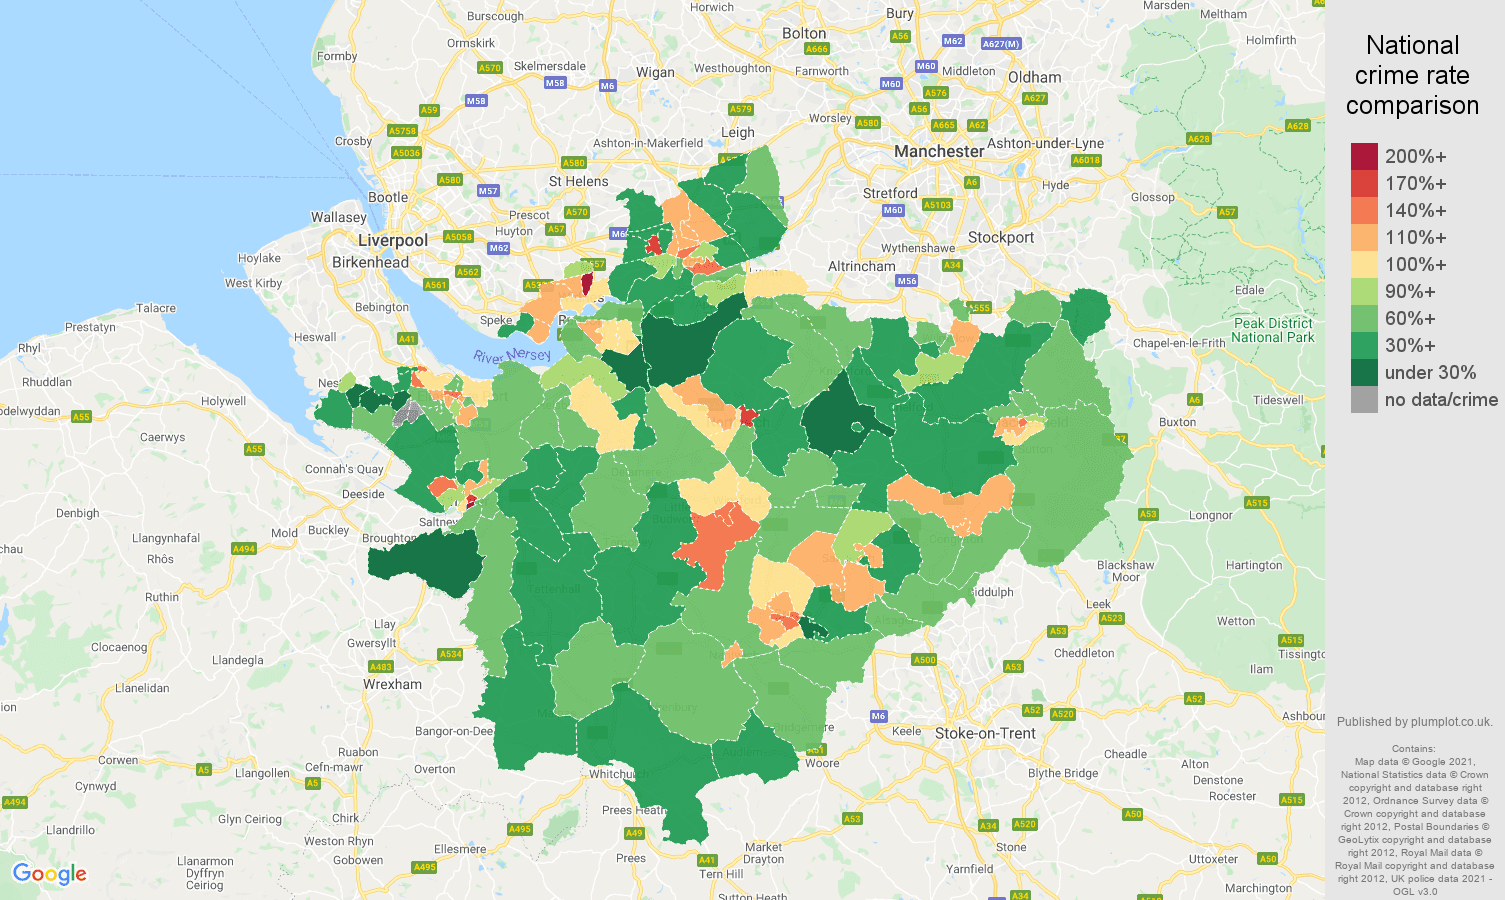 Cheshire antisocial behaviour crime rate comparison map